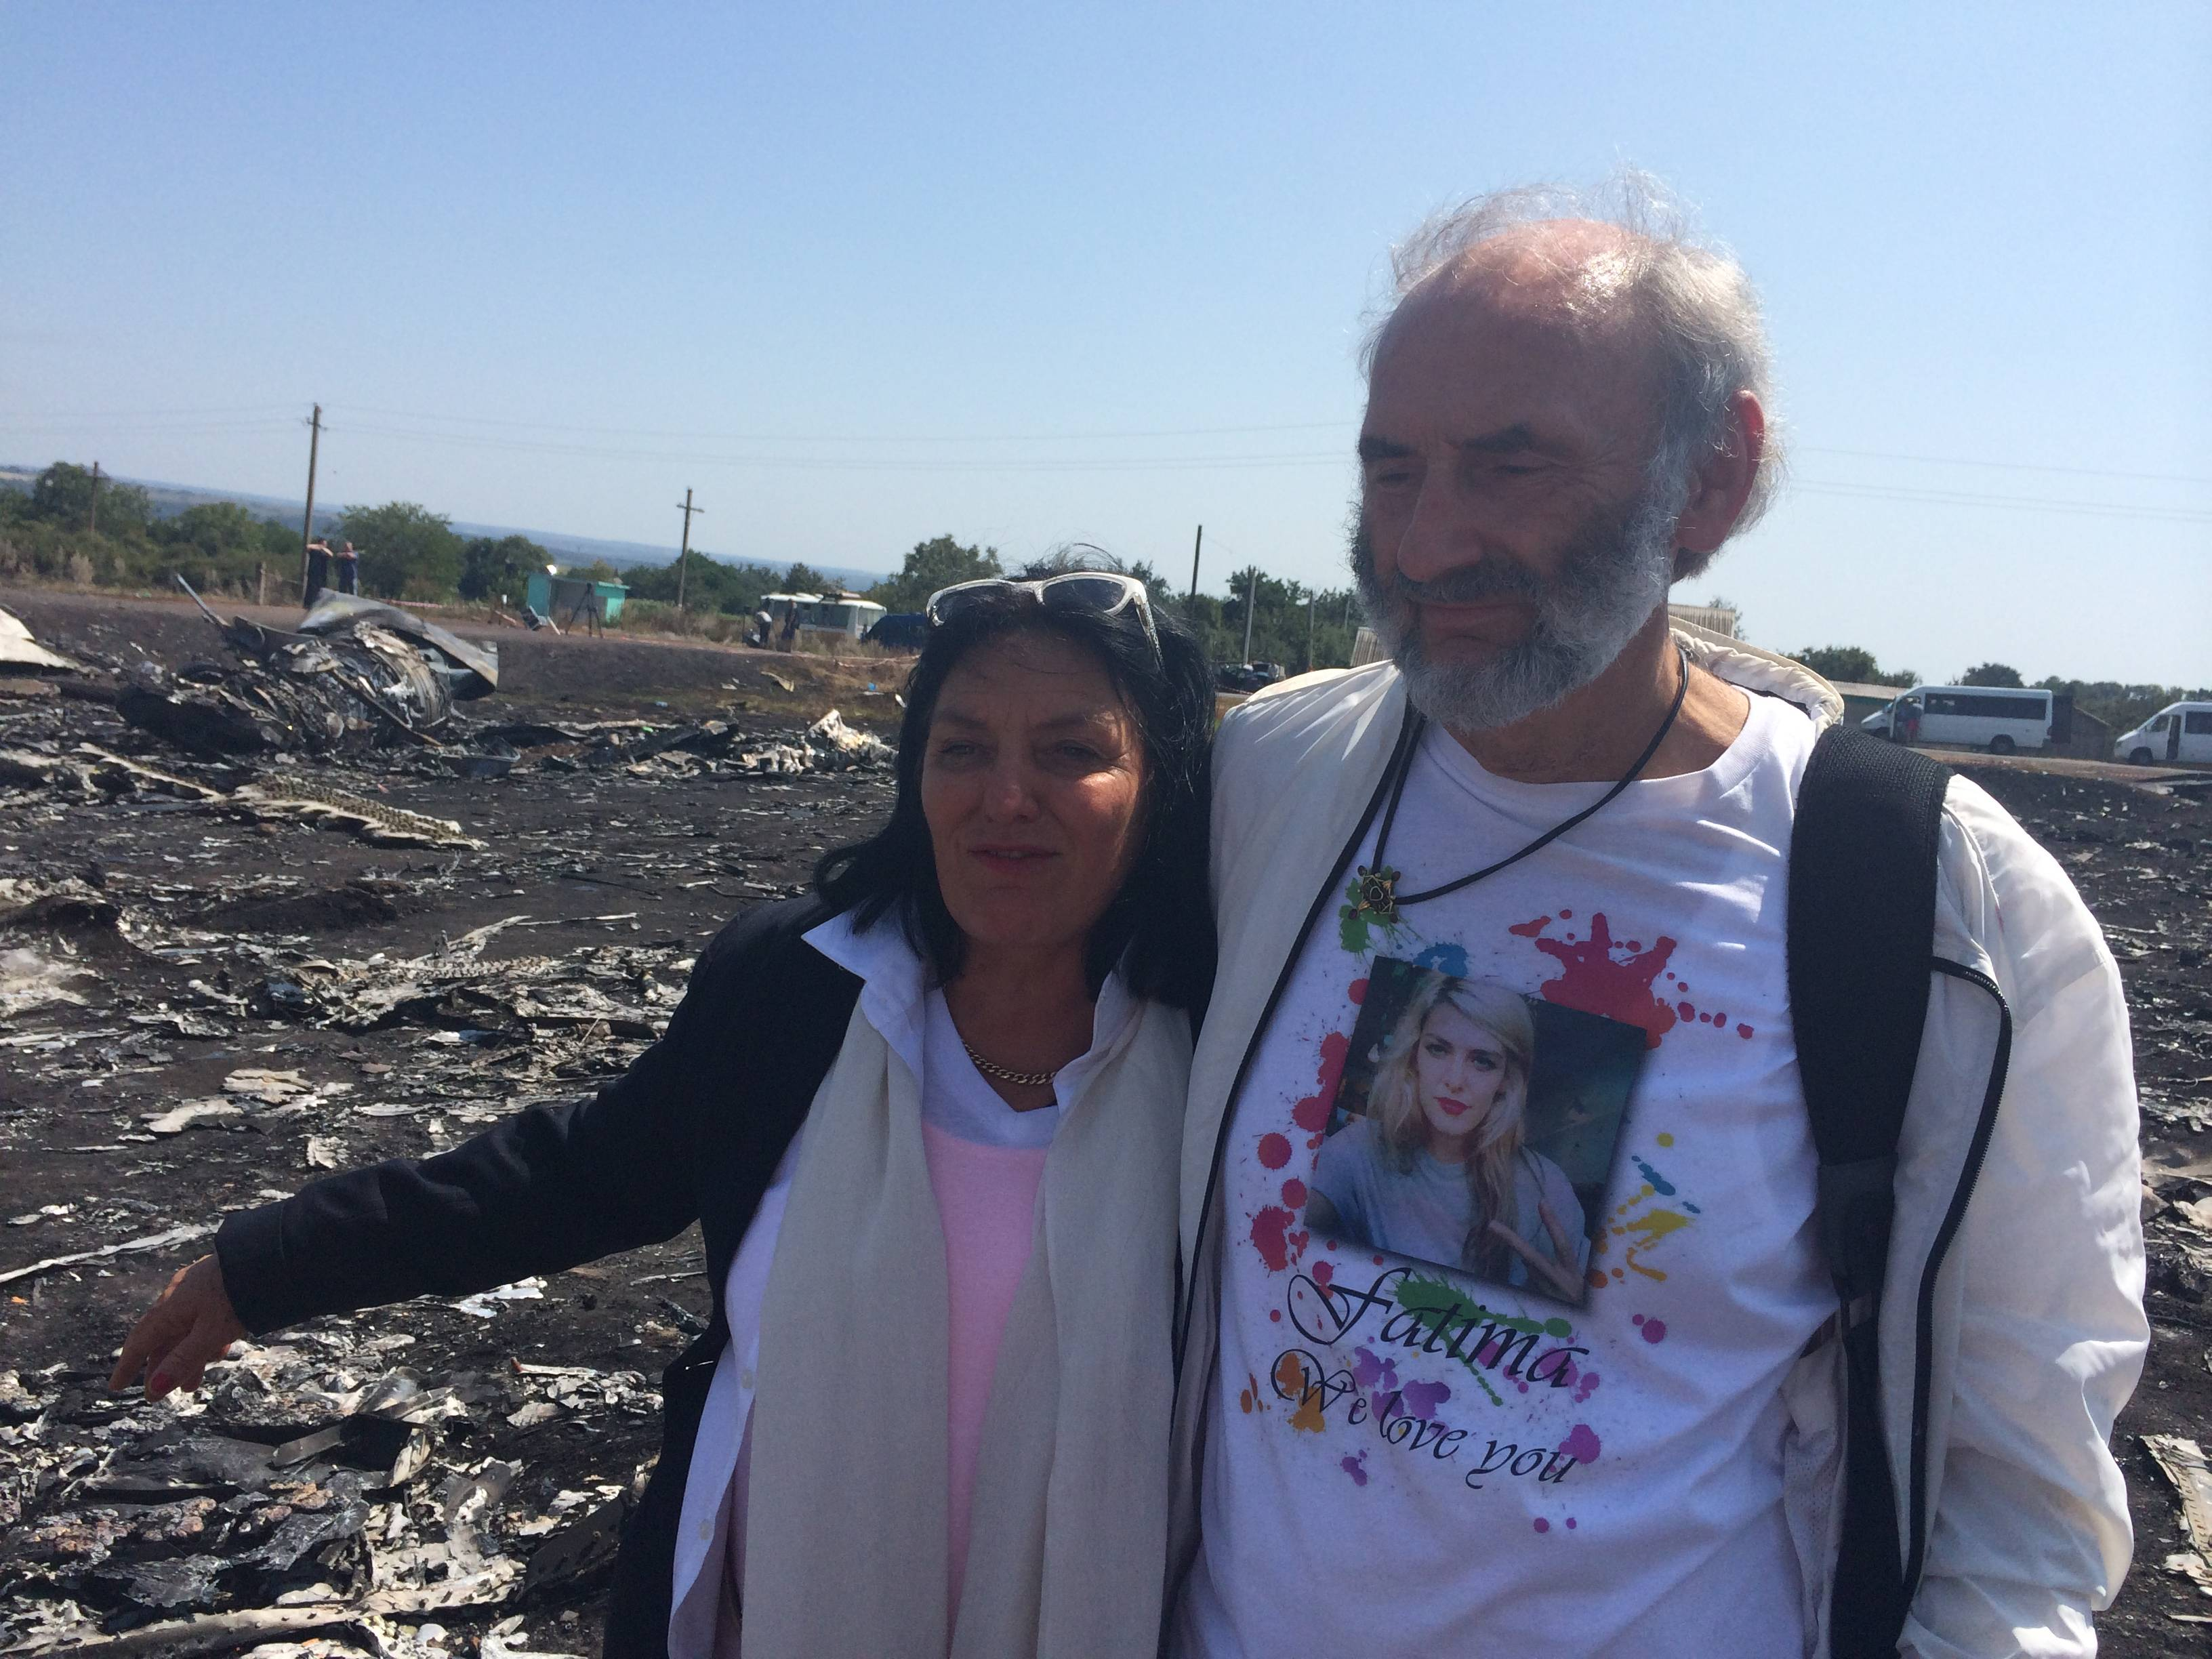 "Jerzy Dyczynski and Angela Rudhart-Dyczynski whose daughter, 25-year-old Fatima, was a passenger on Malaysia Airlines flight MH17, look over the wreckage of the crashed aircraft in Hrabove, Ukraine, Saturday, July 26. The couple who live in Perth, Australia, crossed territory held by pro-Russian rebels to reach the wreckage-strewn farm fields outside the village of Hrabove. They last spoke to Fatima shortly before she boarded the flight for Kuala Lumpur in Amsterdam on July 17. Rudhart-Dyczynski said, ""We have promised our daughter we will come here."""